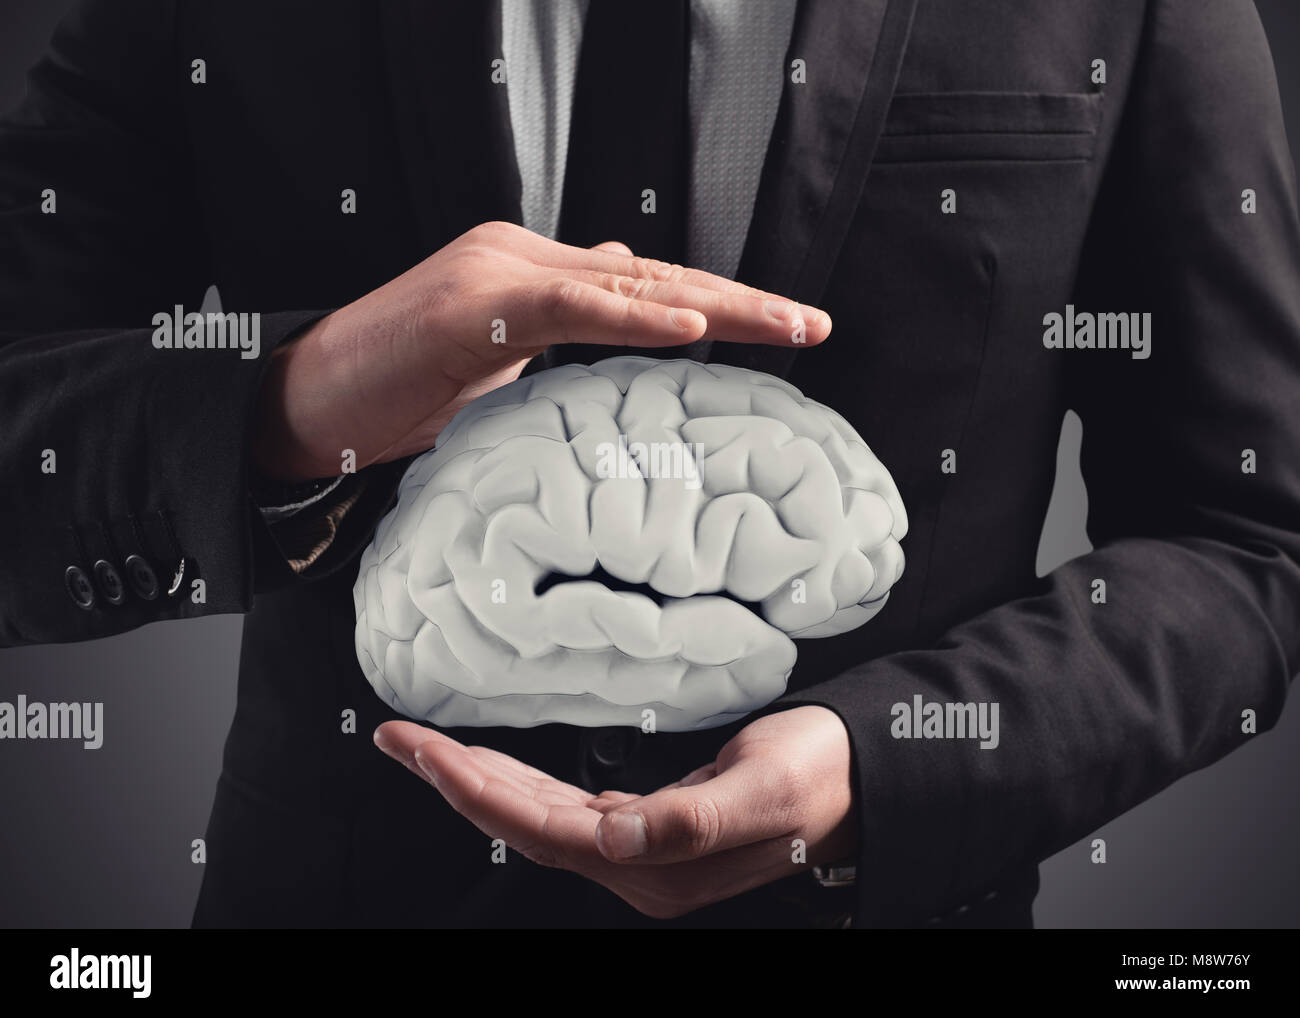 Man protects a brain with his hands. 3D Rendering - Stock Image